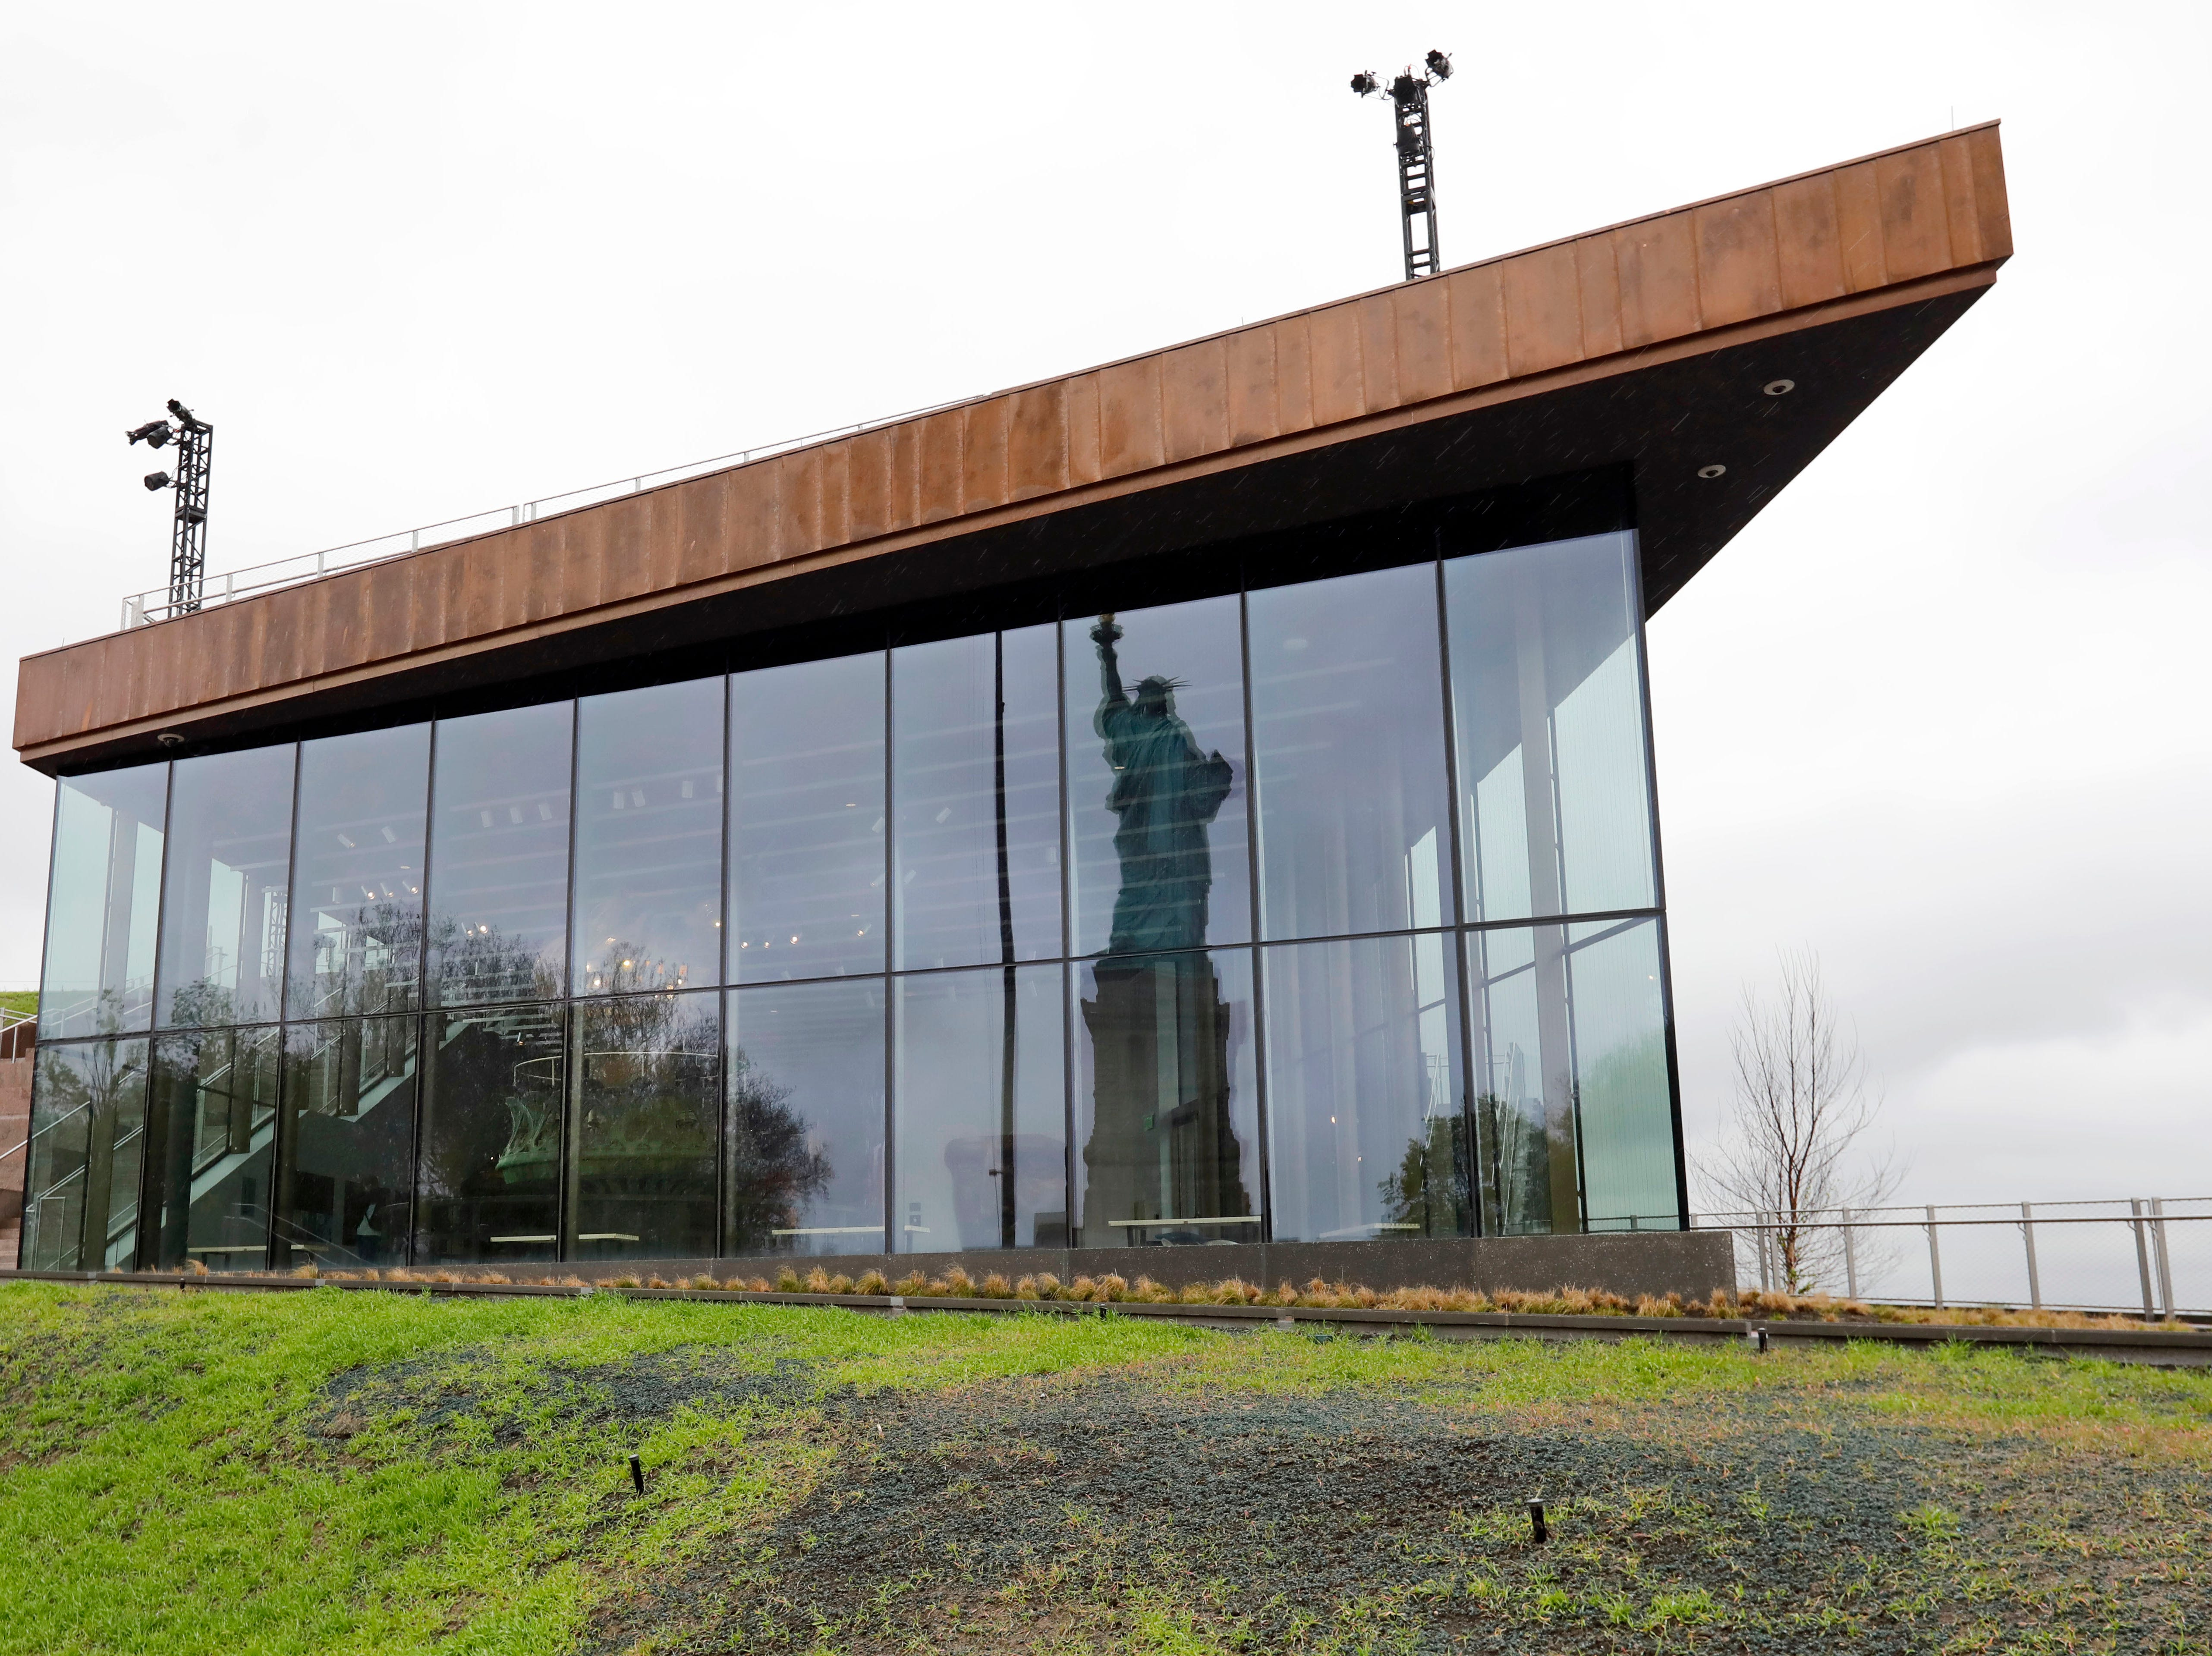 The Statue of Liberty is reflected in the windows of the new Statue of Liberty Museum. The entire structure is meant to connect to Lady Liberty, using the same granite that's part of the statue pedestal and including copper as a nod to the material the statue is made of, said Cameron Ringness, the project designer at FXCollaborative, which created the museum's overall design.